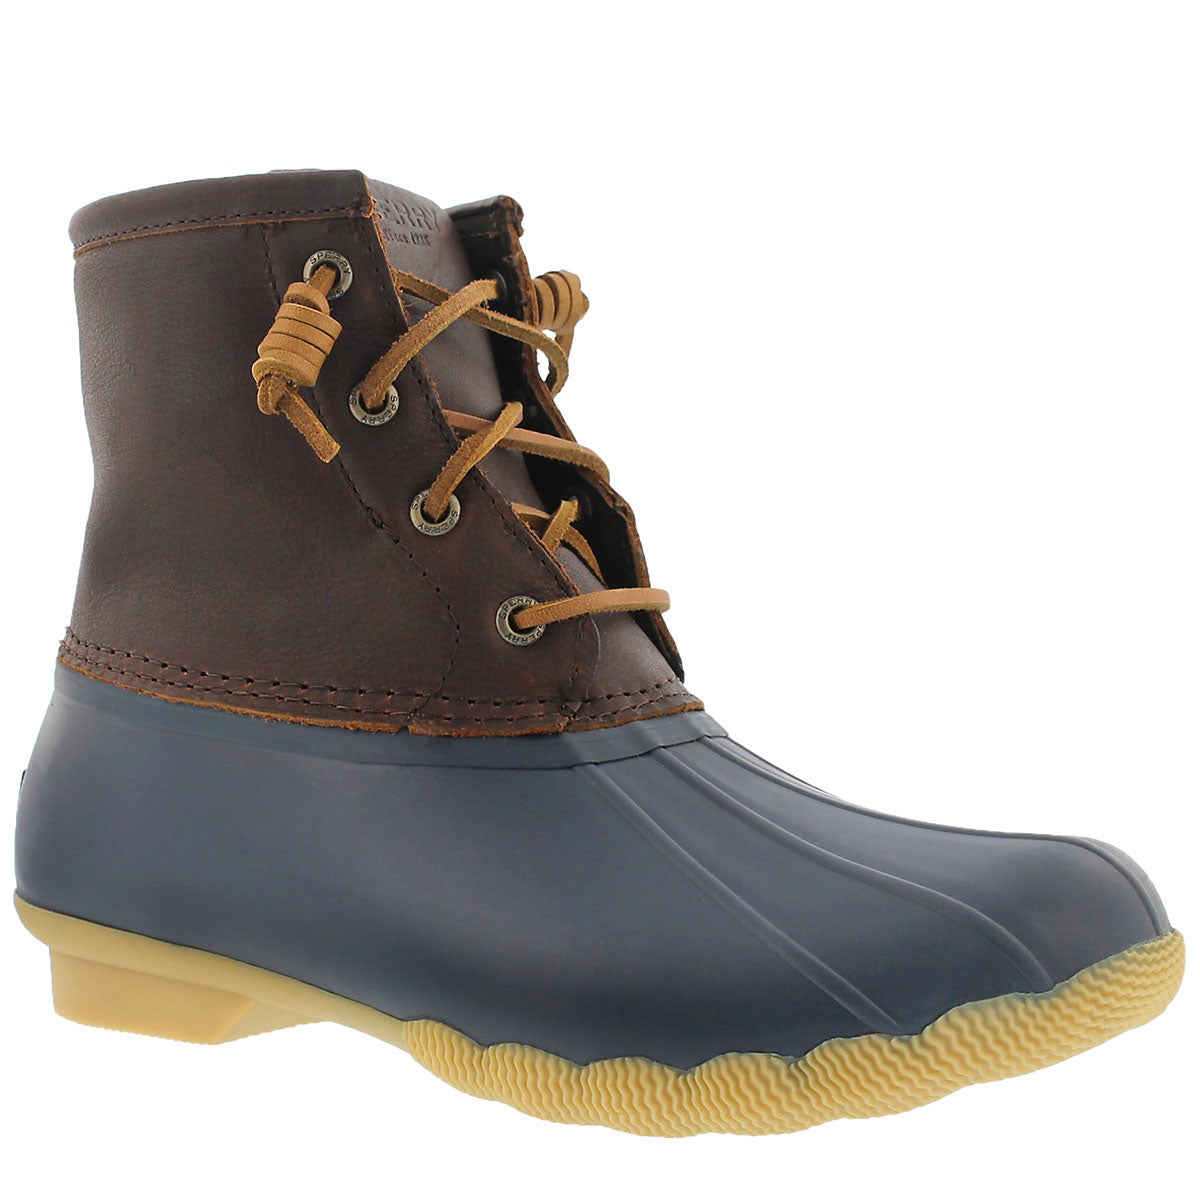 Lds Saltwater tan/nvy lined rain boot